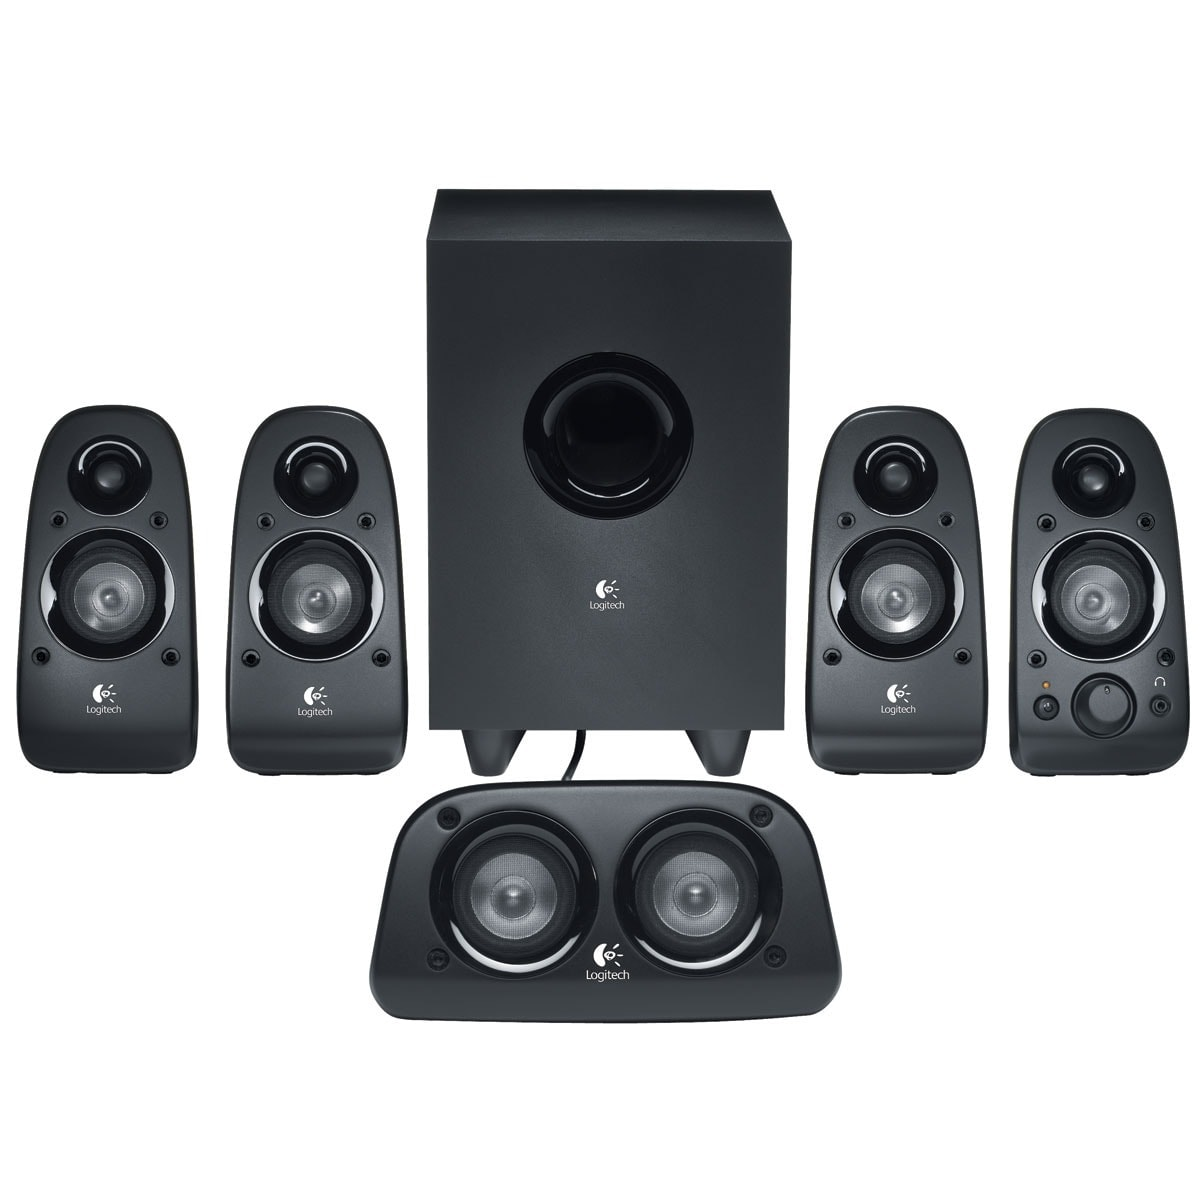 logitech 5hp caisson surround sound speaker z506 enceinte pc logitech. Black Bedroom Furniture Sets. Home Design Ideas